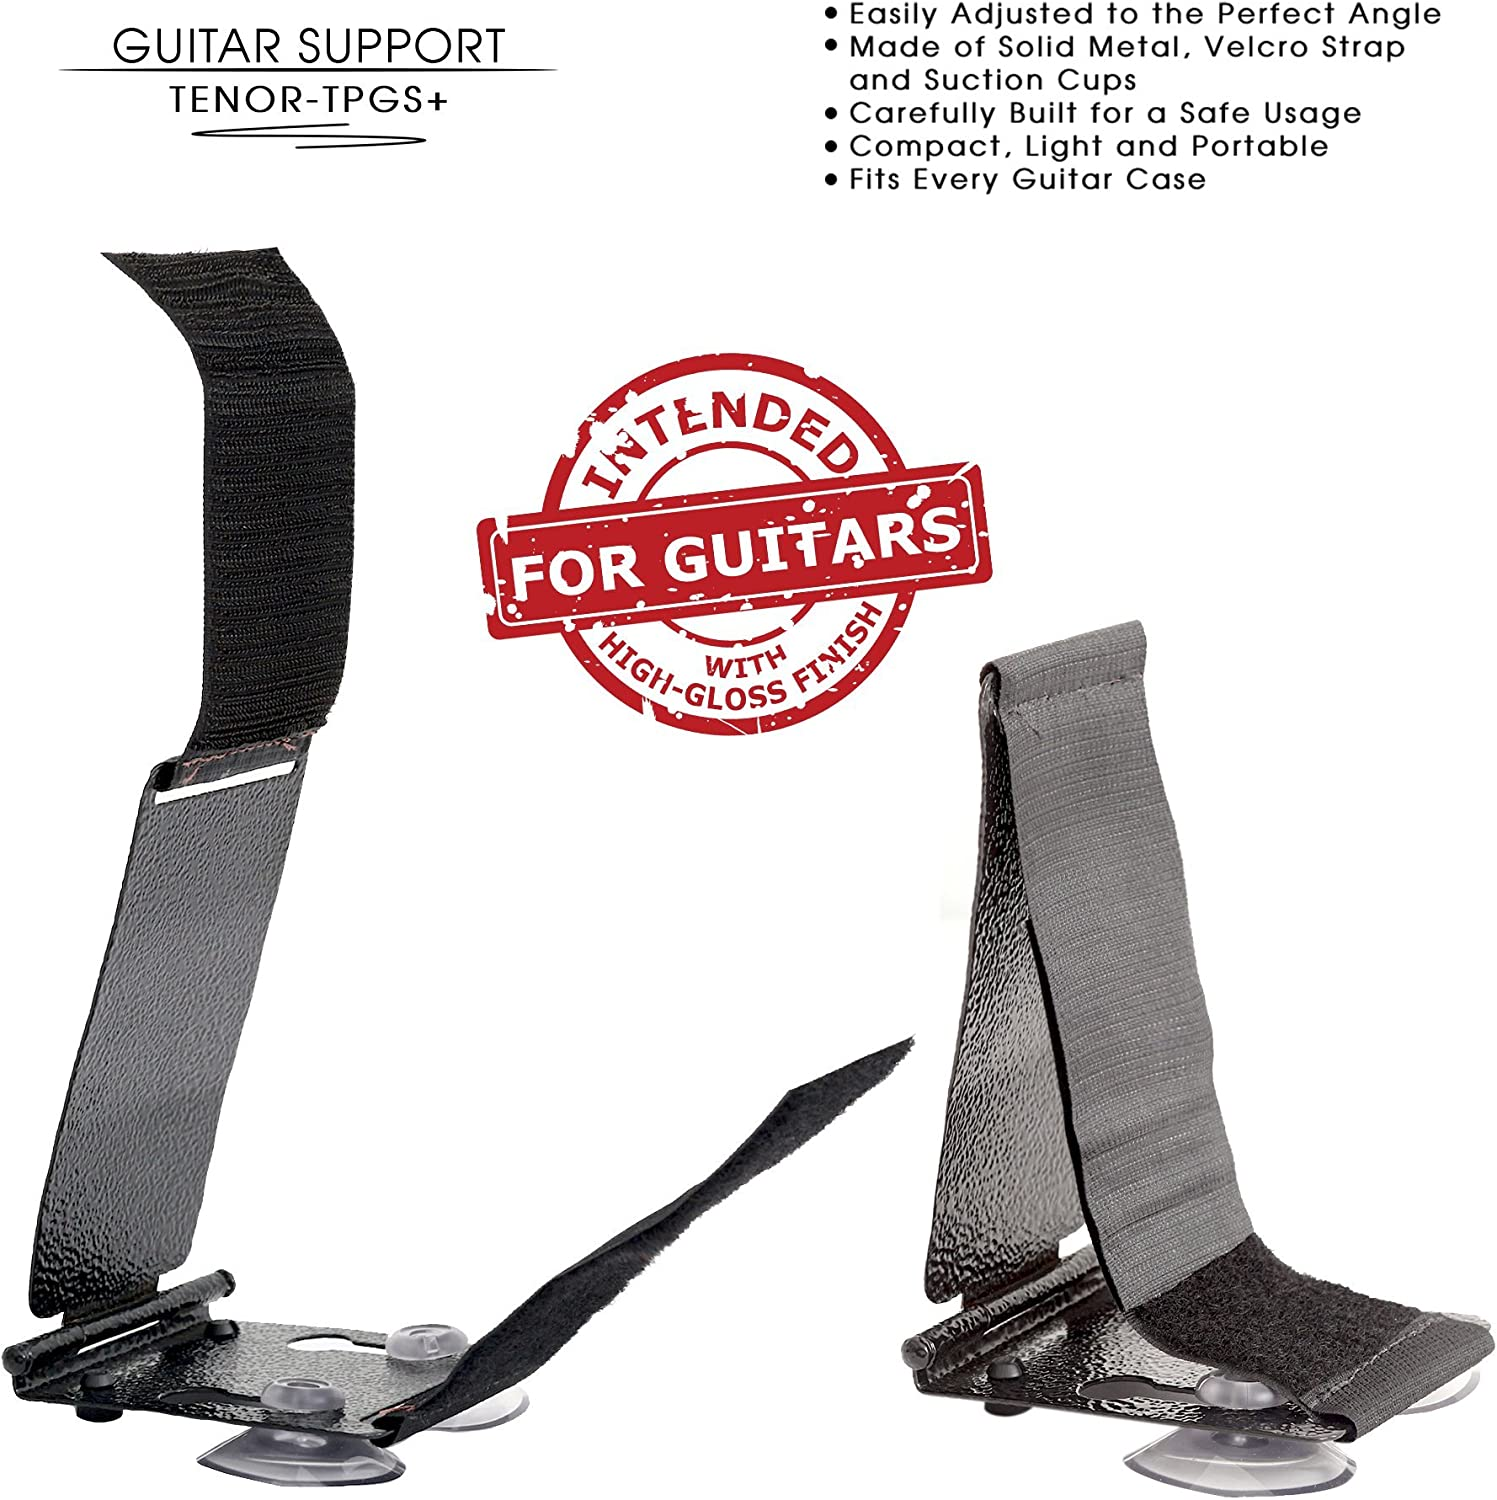 Guitar Lifter Professional Posa Guitar Support for Classical Flamenco Acoustic or Arch Top Guitar Players. TPGS TENOR Professional Ergonomic Guitar Rest Guitar Foot Stools